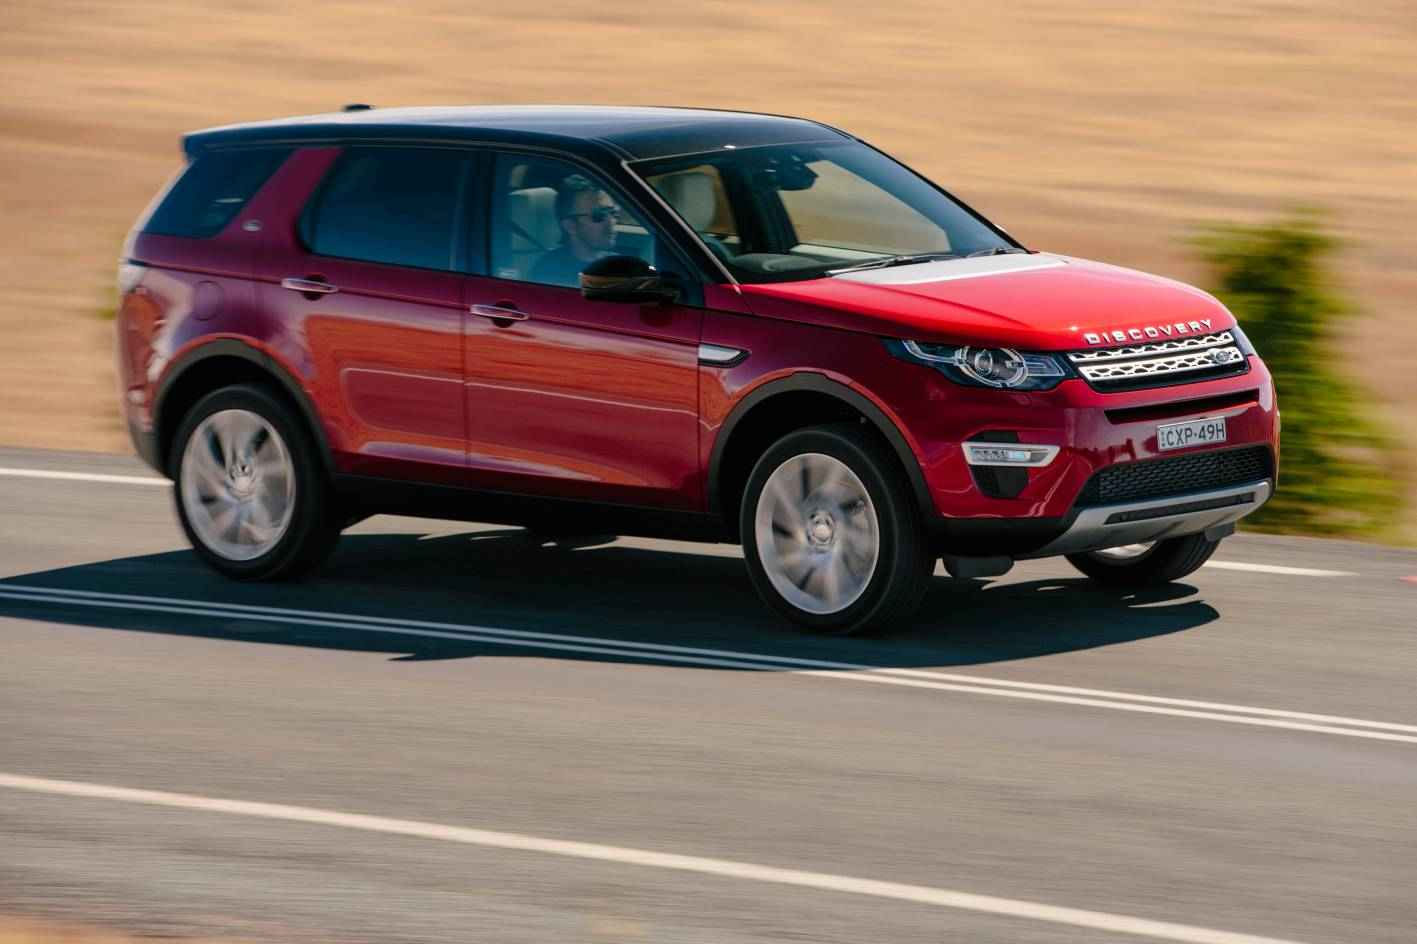 Land Rover Cars News 2015 Discovery Sport Pricing And